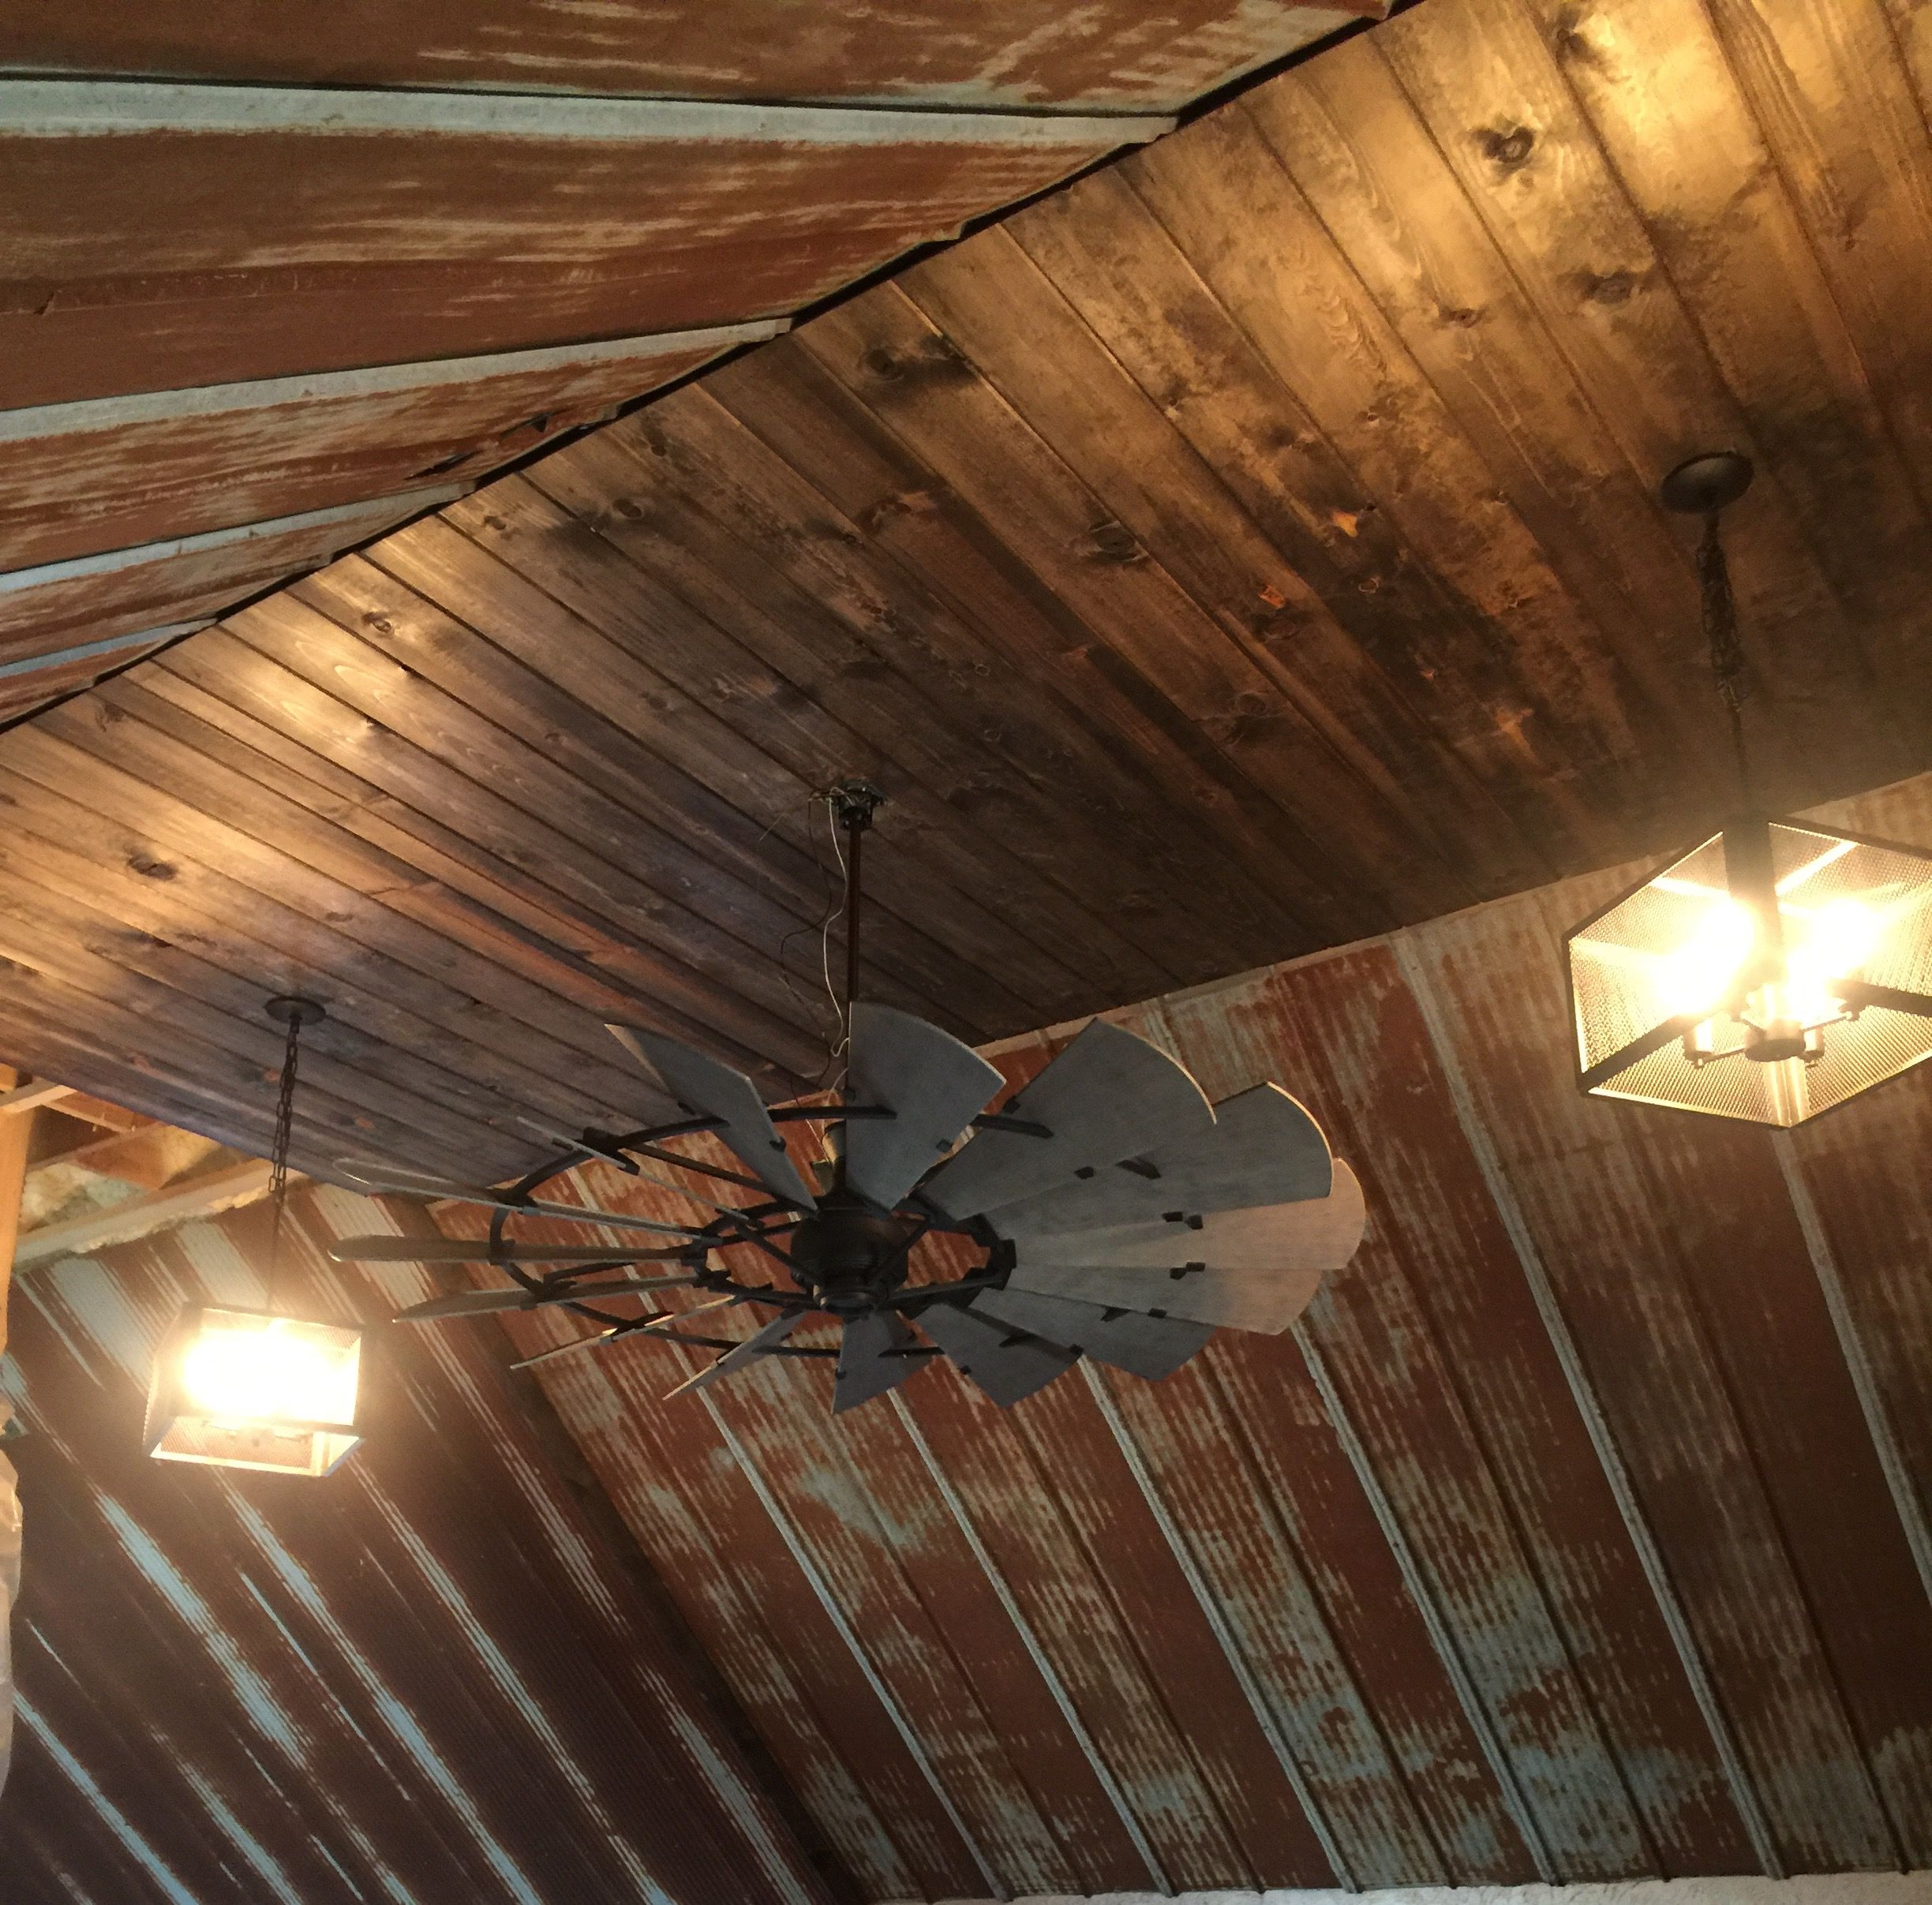 Rustic barn tin ceiling with windmill ceiling fan | Our ...